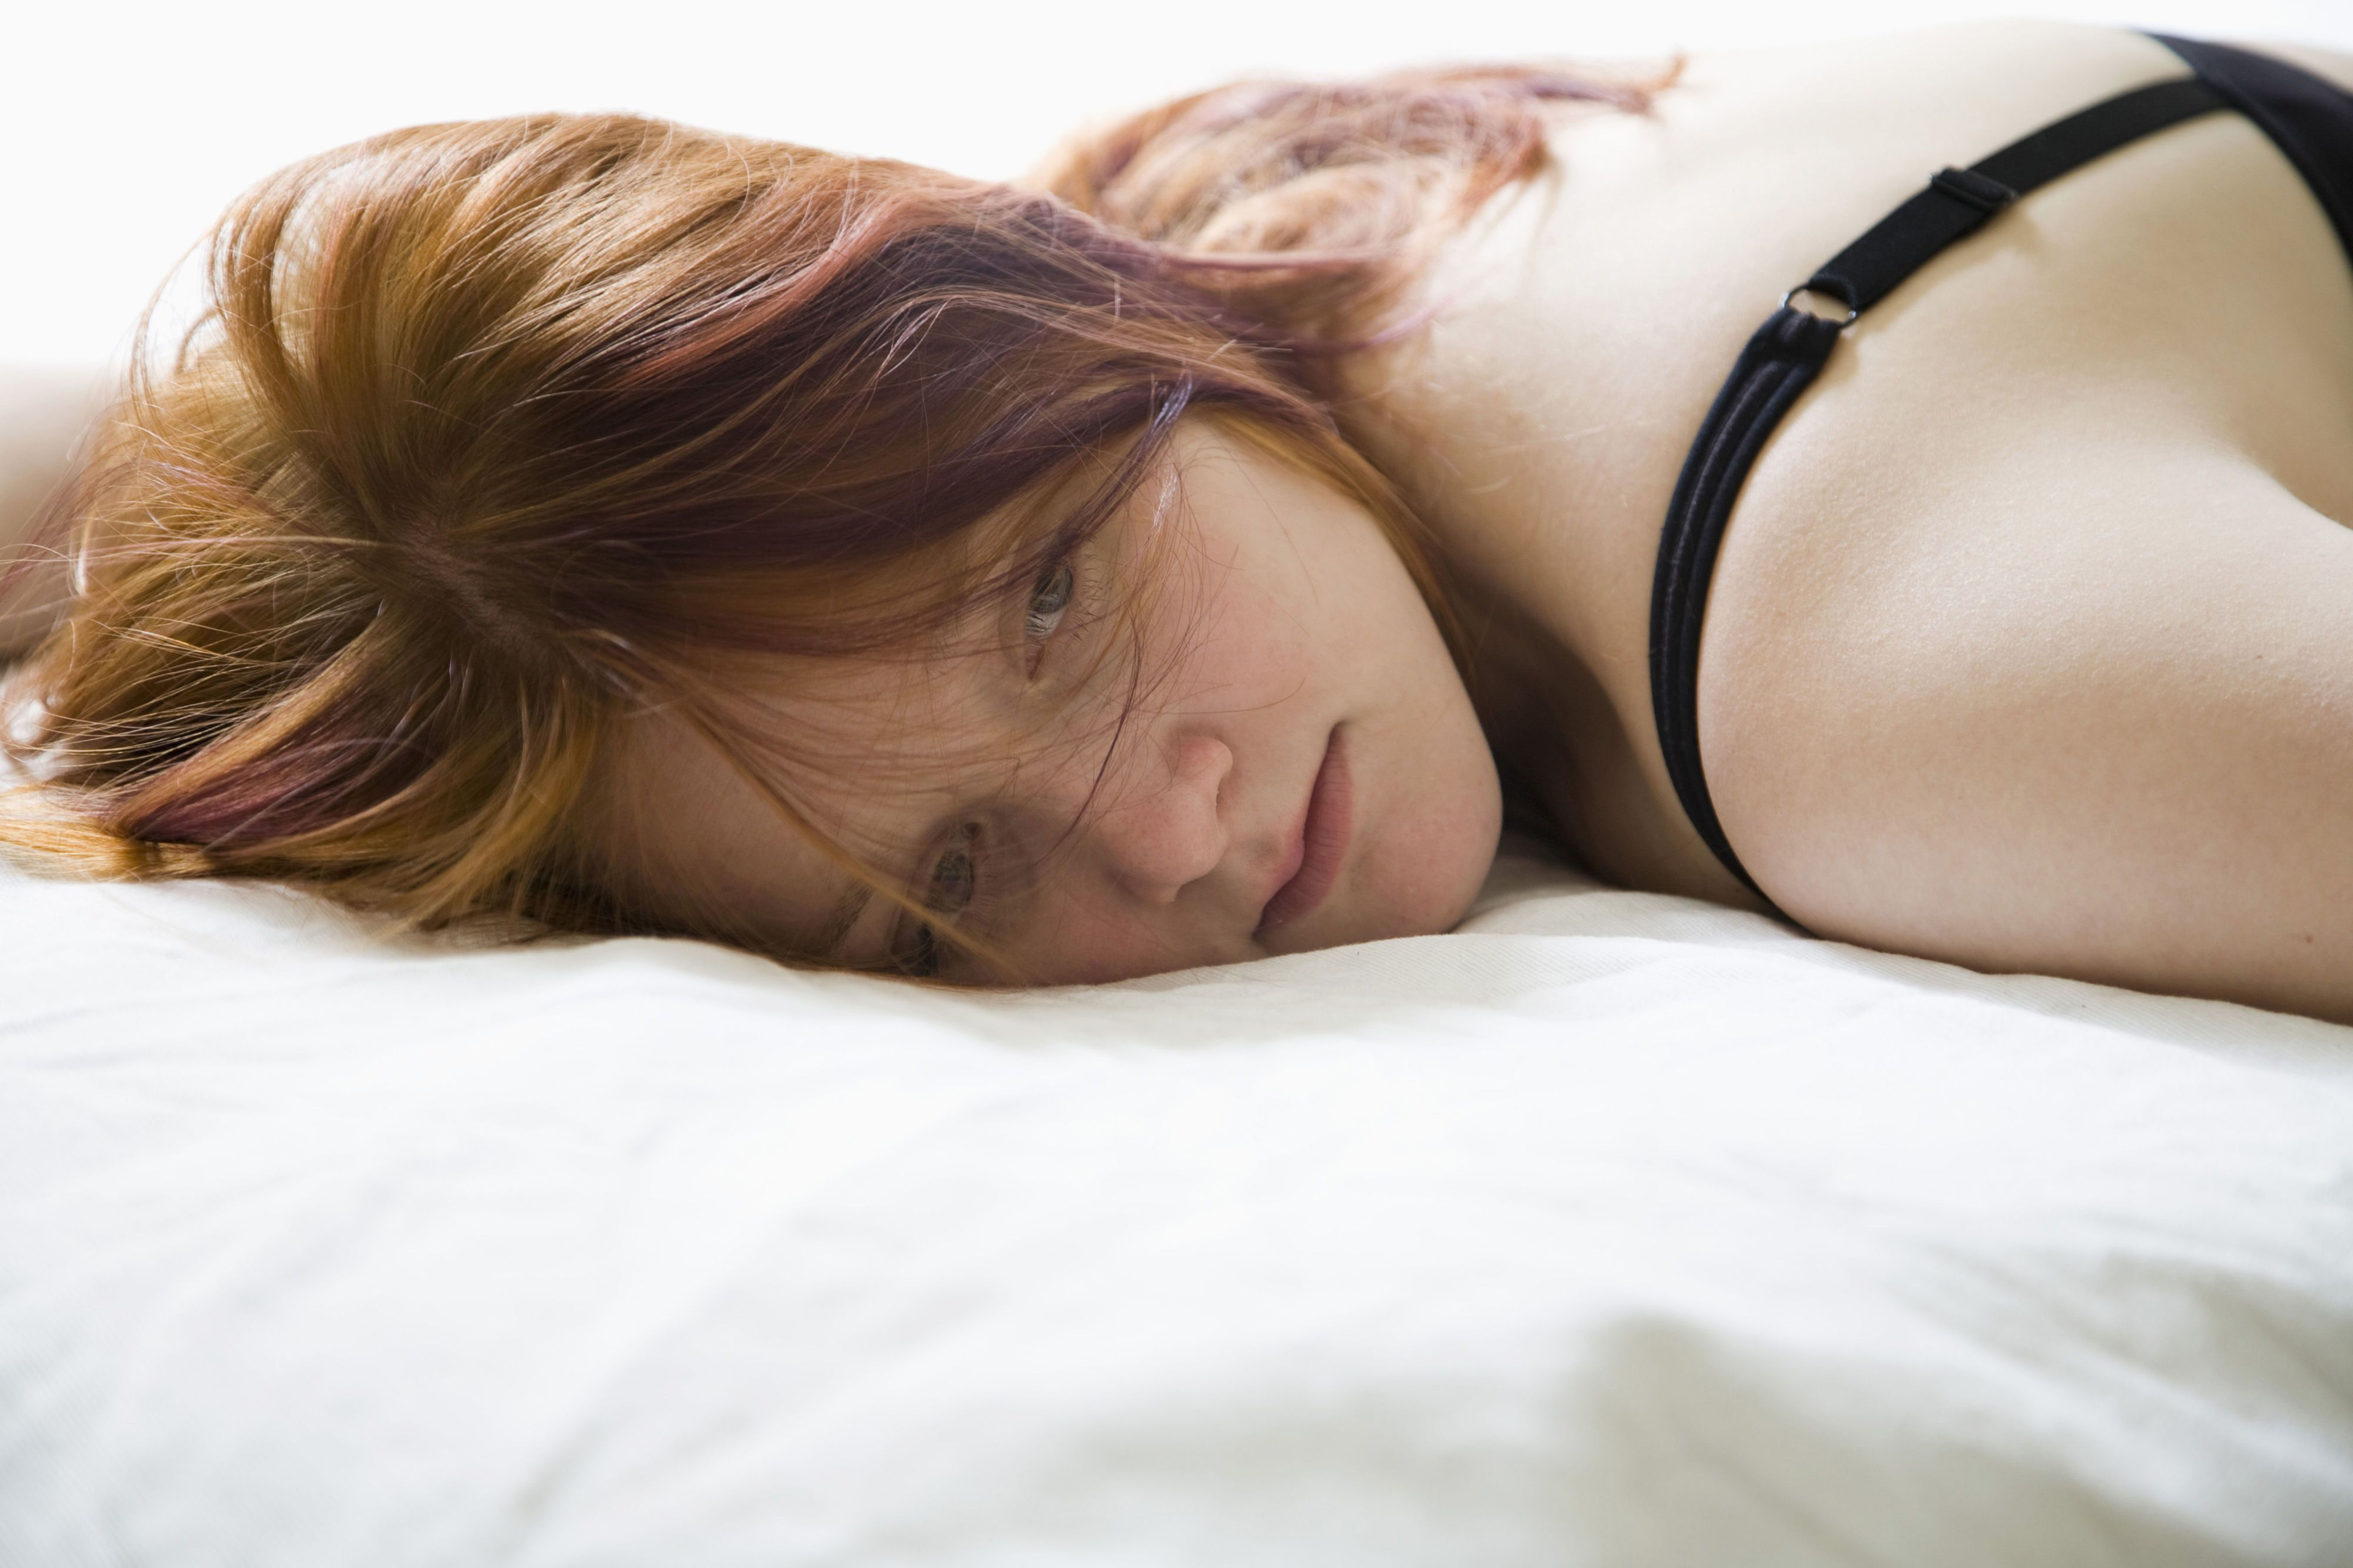 Older women lack passion and sex drive